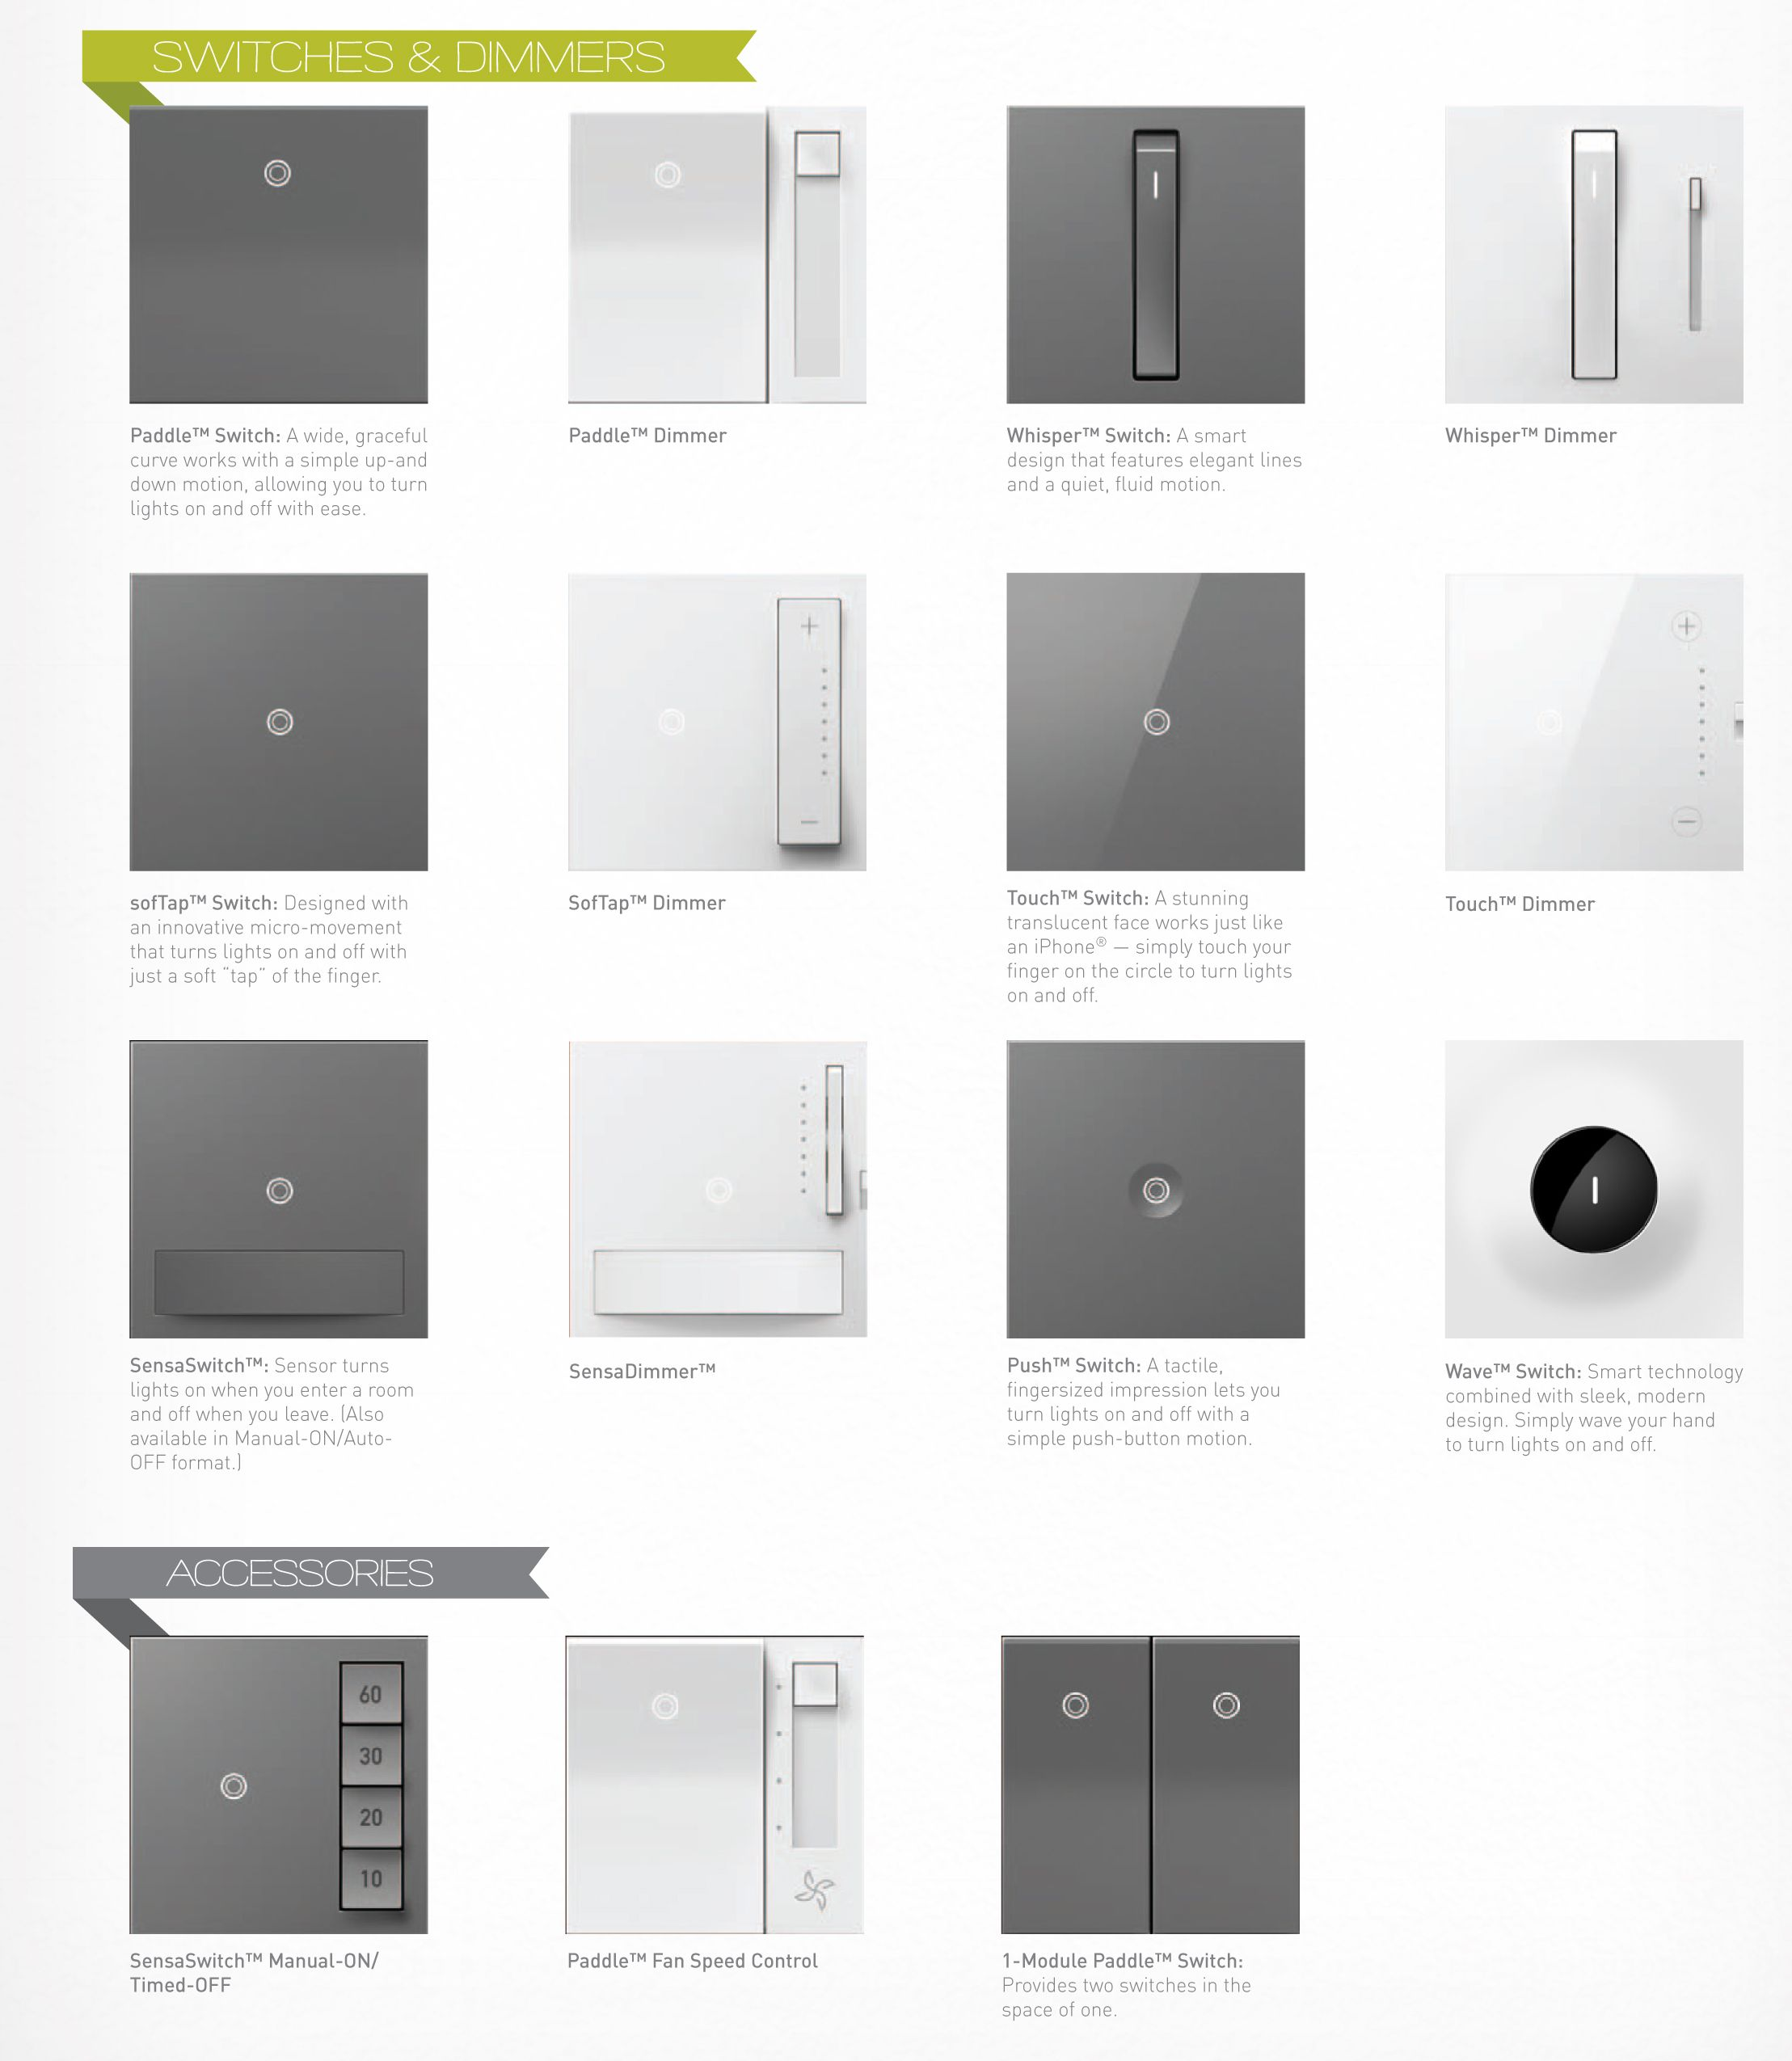 Legrand Beautiful Switches | Home and gardening | Pinterest ...